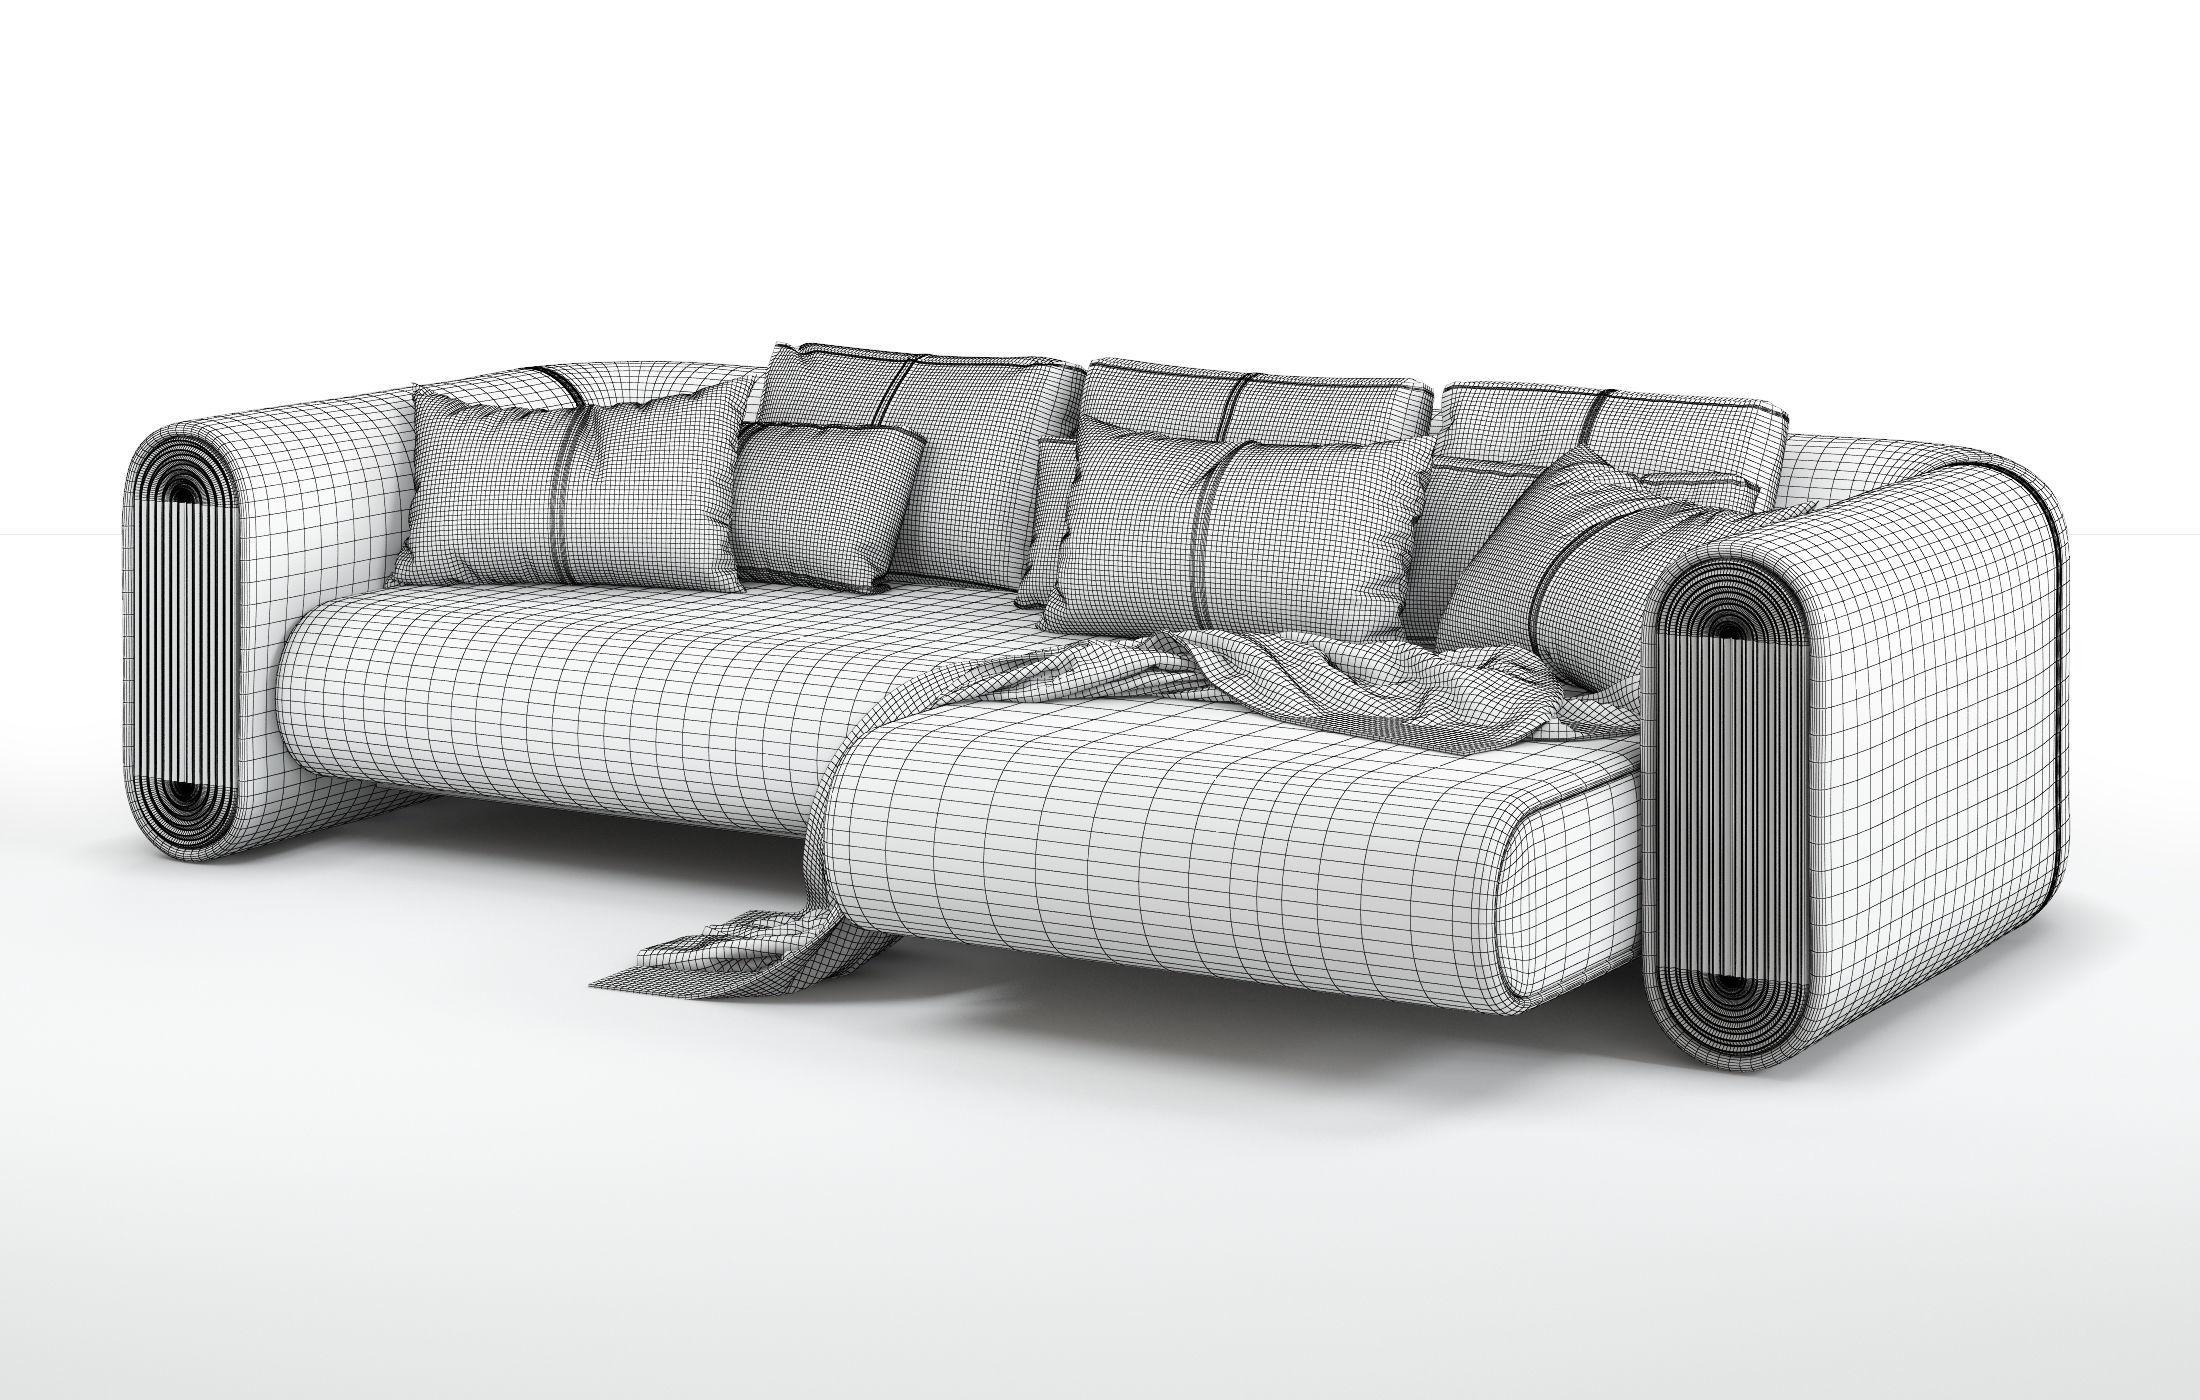 280Cr Union Corner Unit Sofa 3D Model | Cgtrader Intended For Sofa Corner Units (View 17 of 24)